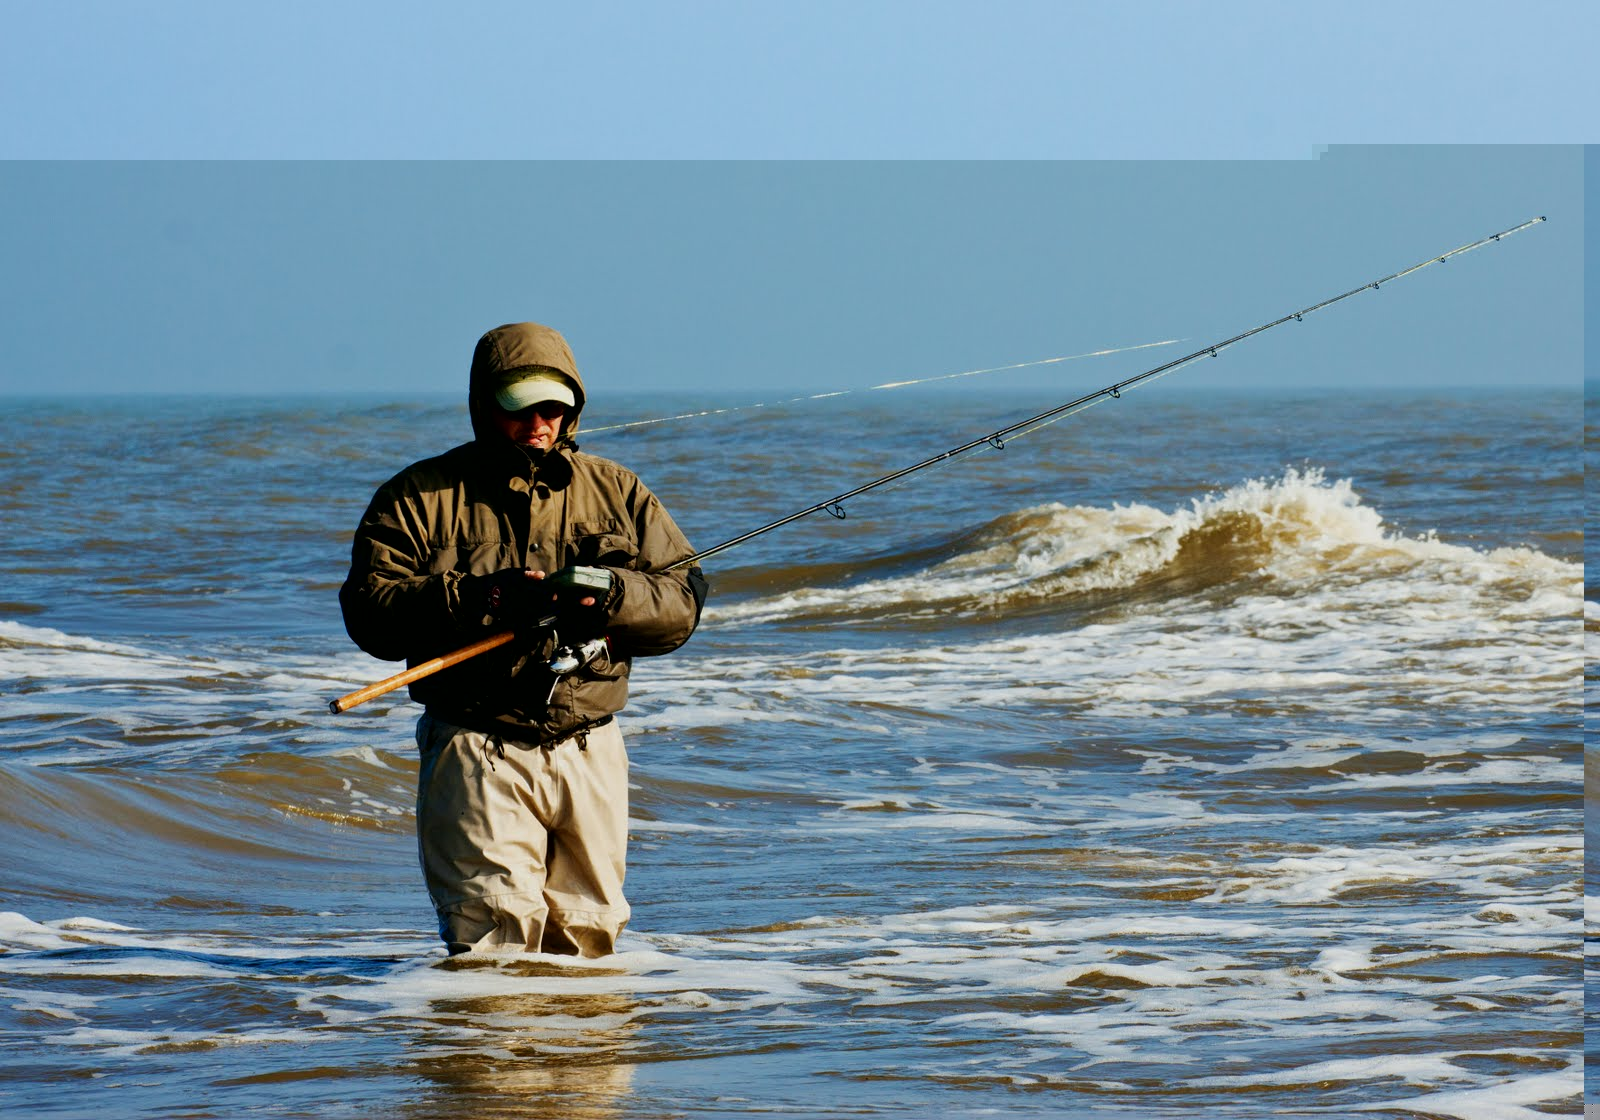 Sea_fishing-1.jpg